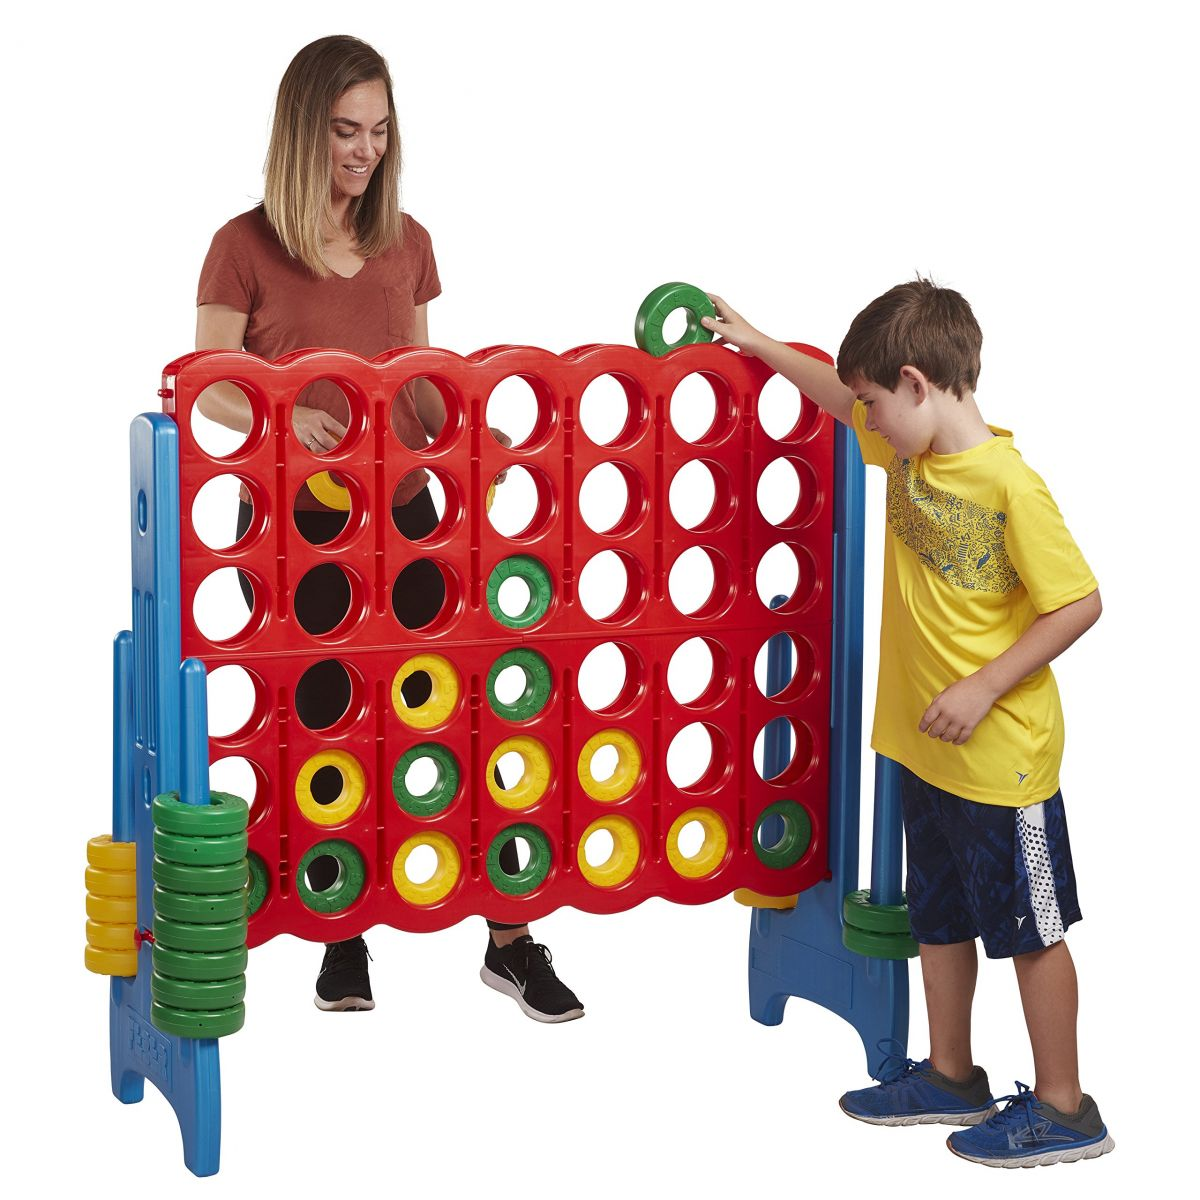 Jumbo Connect Four in a Row Game Being Played By Mother and Child